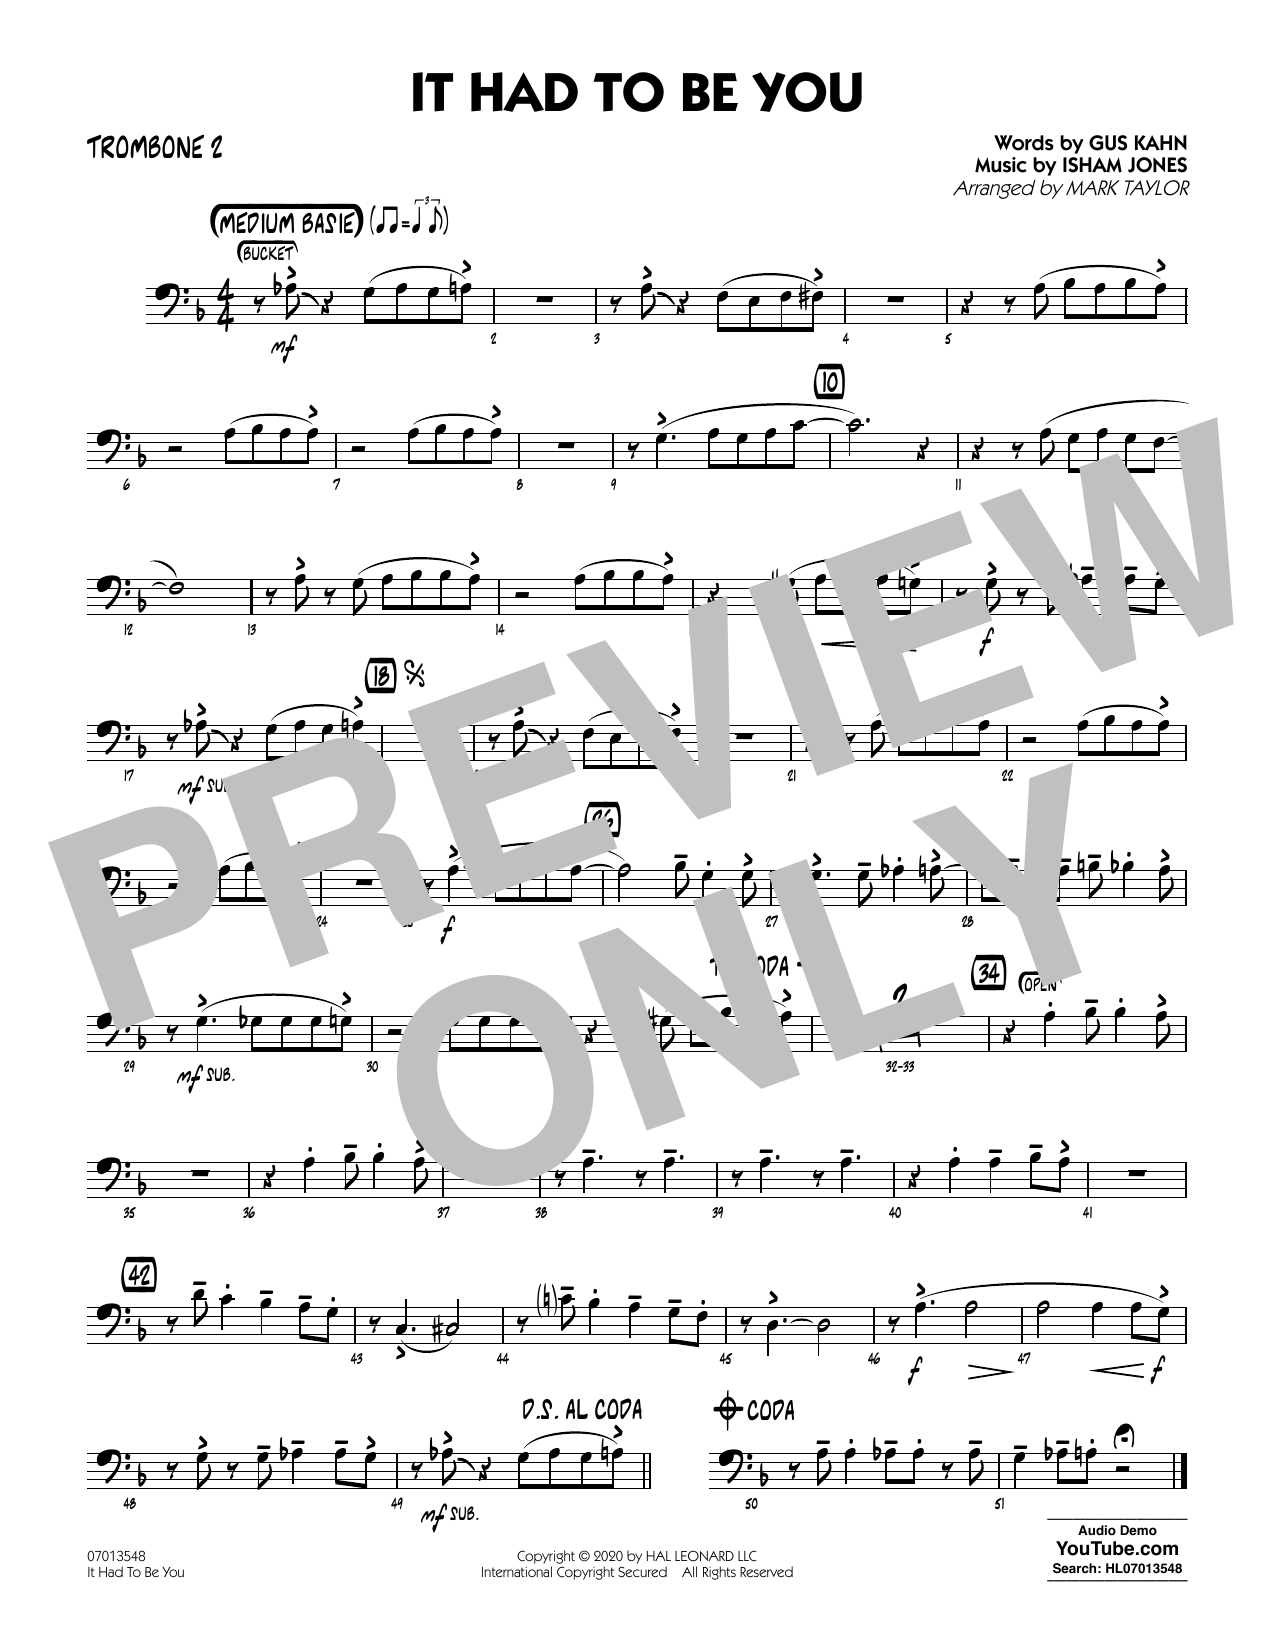 It Had to Be You (arr. Mark Taylor) - Trombone 2 Sheet Music